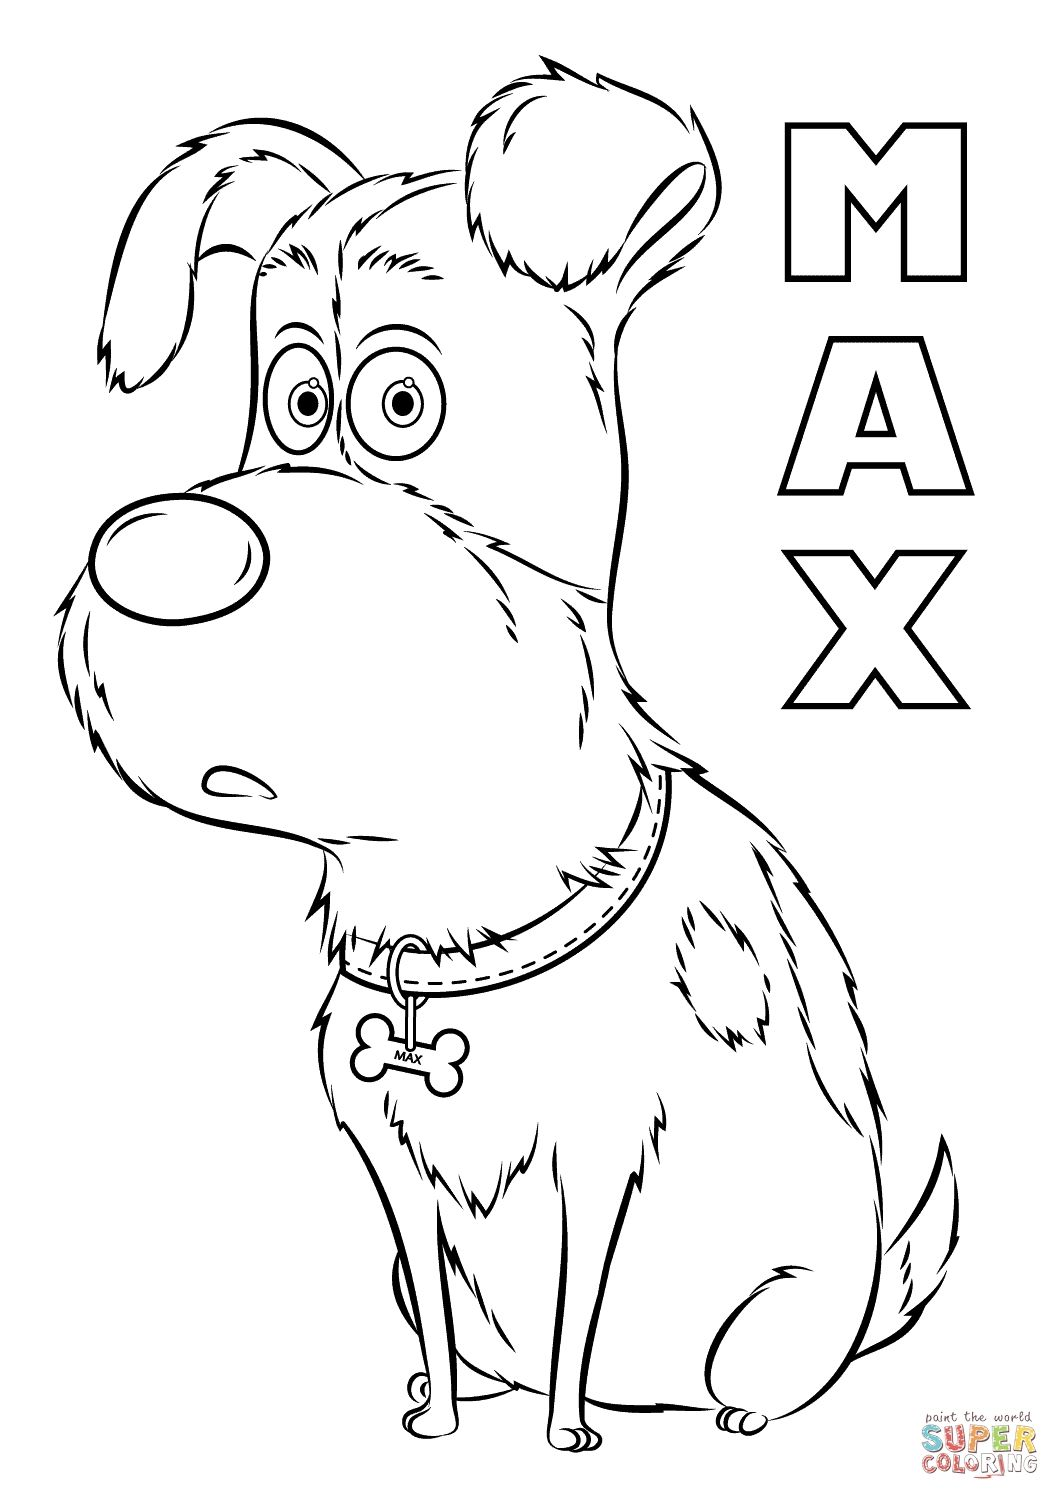 17+ Printable pet coloring pages ideas